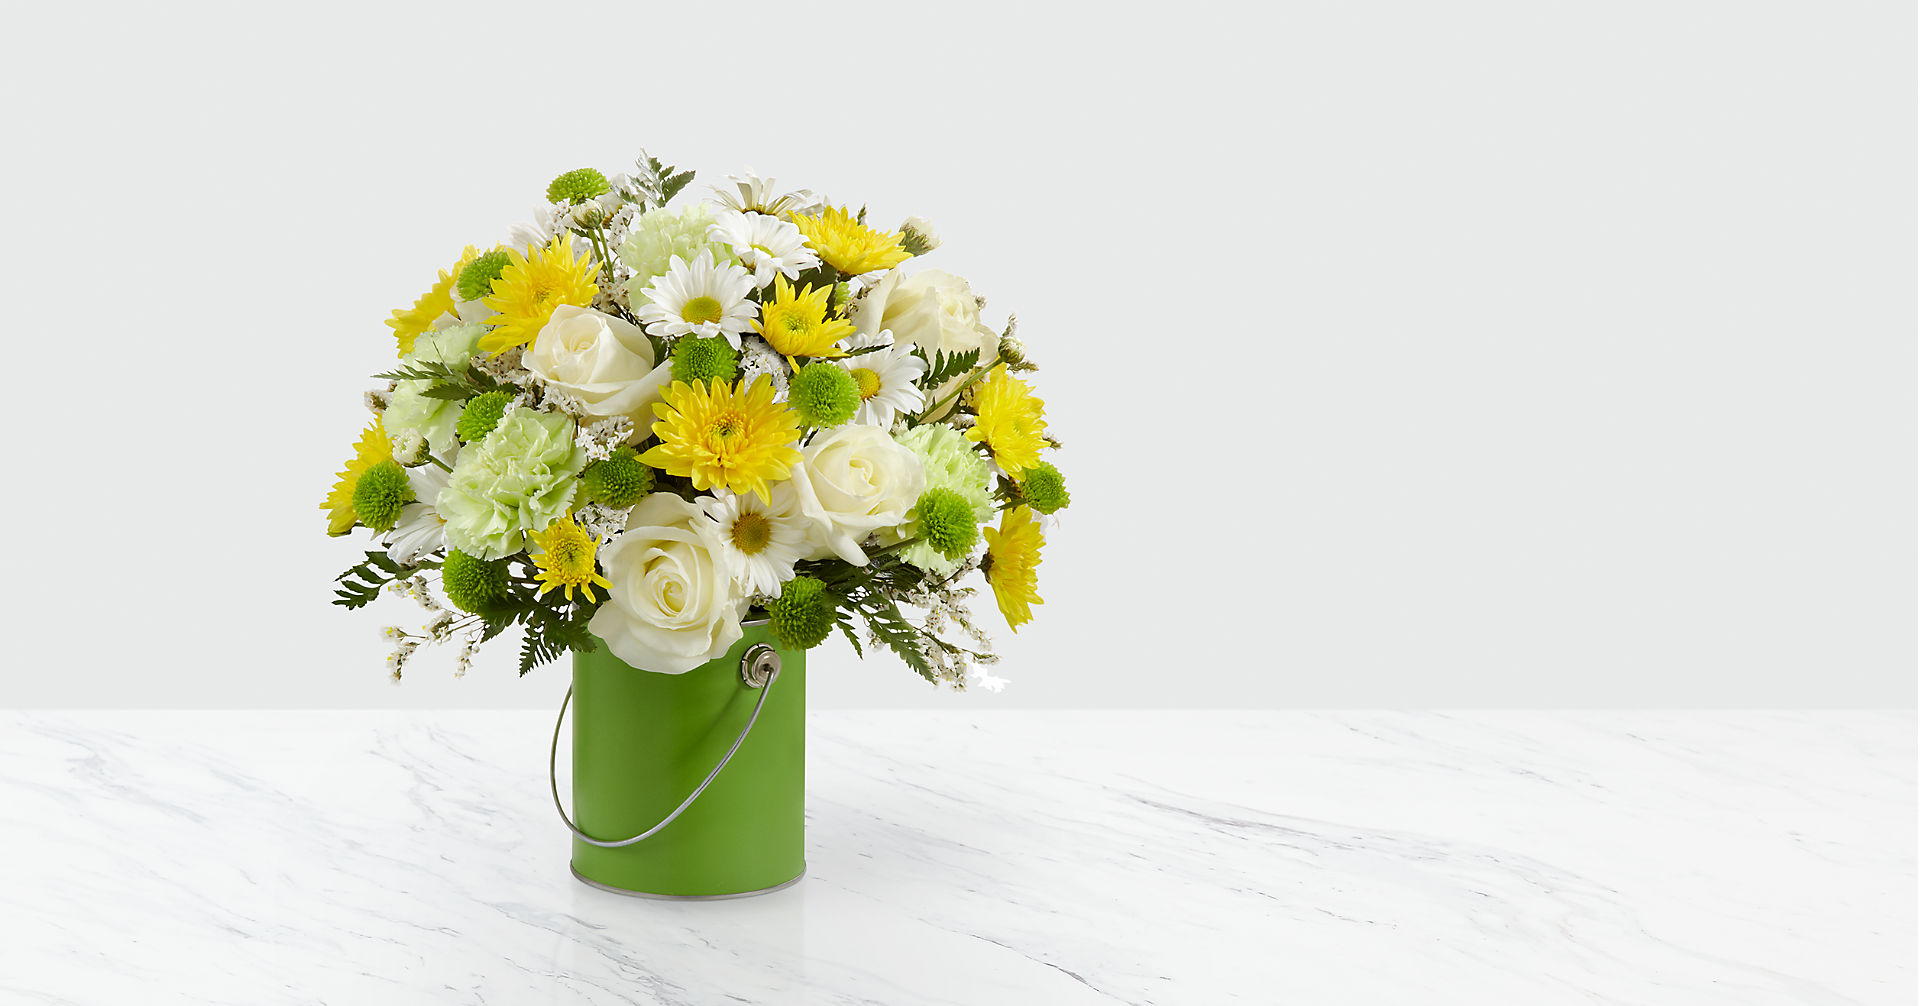 The Color Your Day With Joy™ Bouquet - VASE INCLUDED - Image 1 Of 2